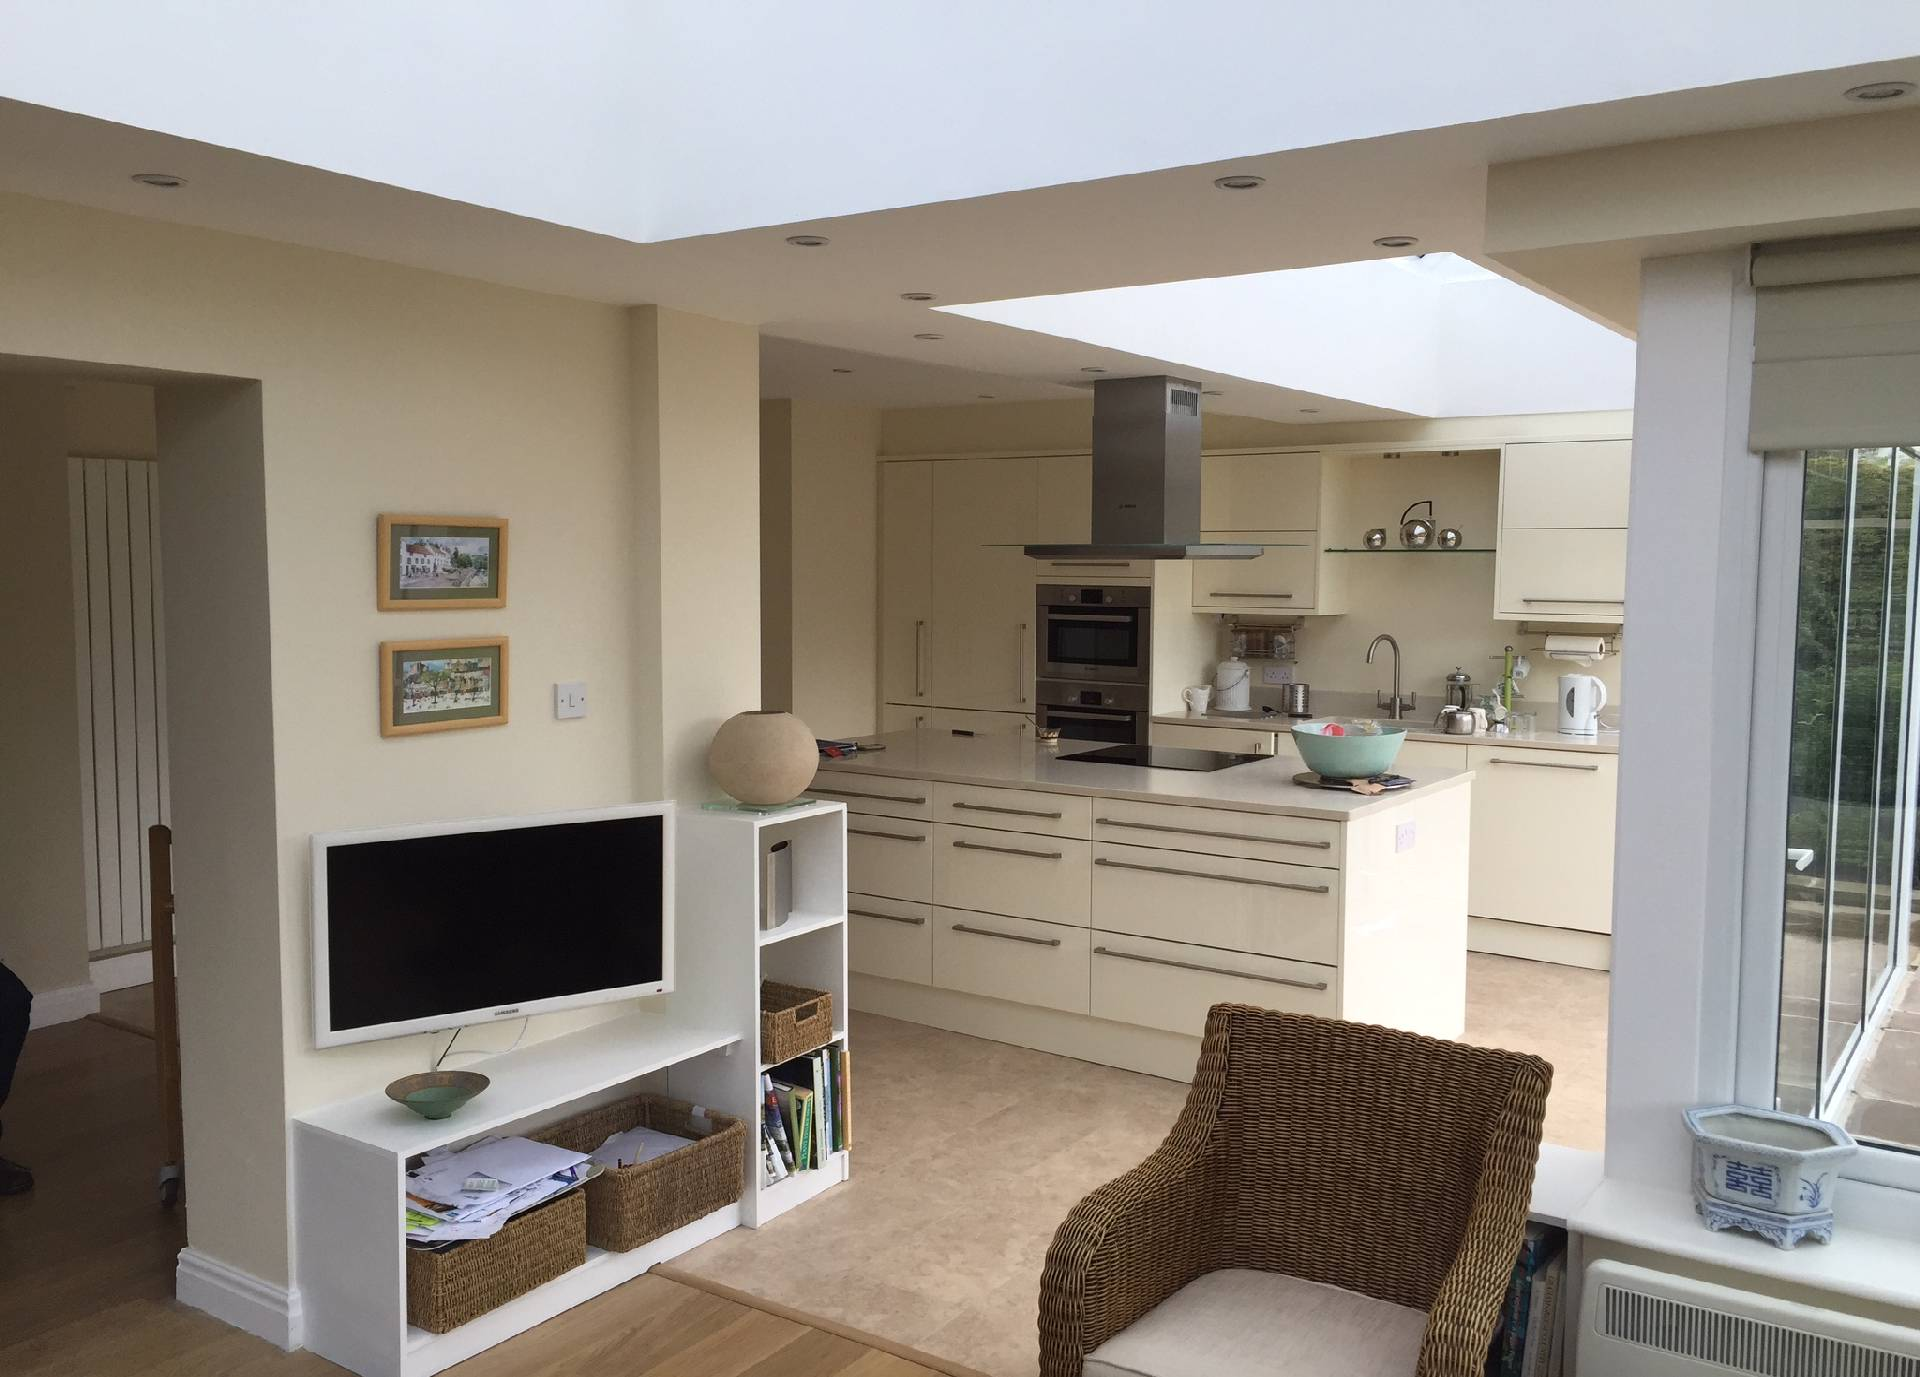 Kitchen Extension in Orangery - internal view 2